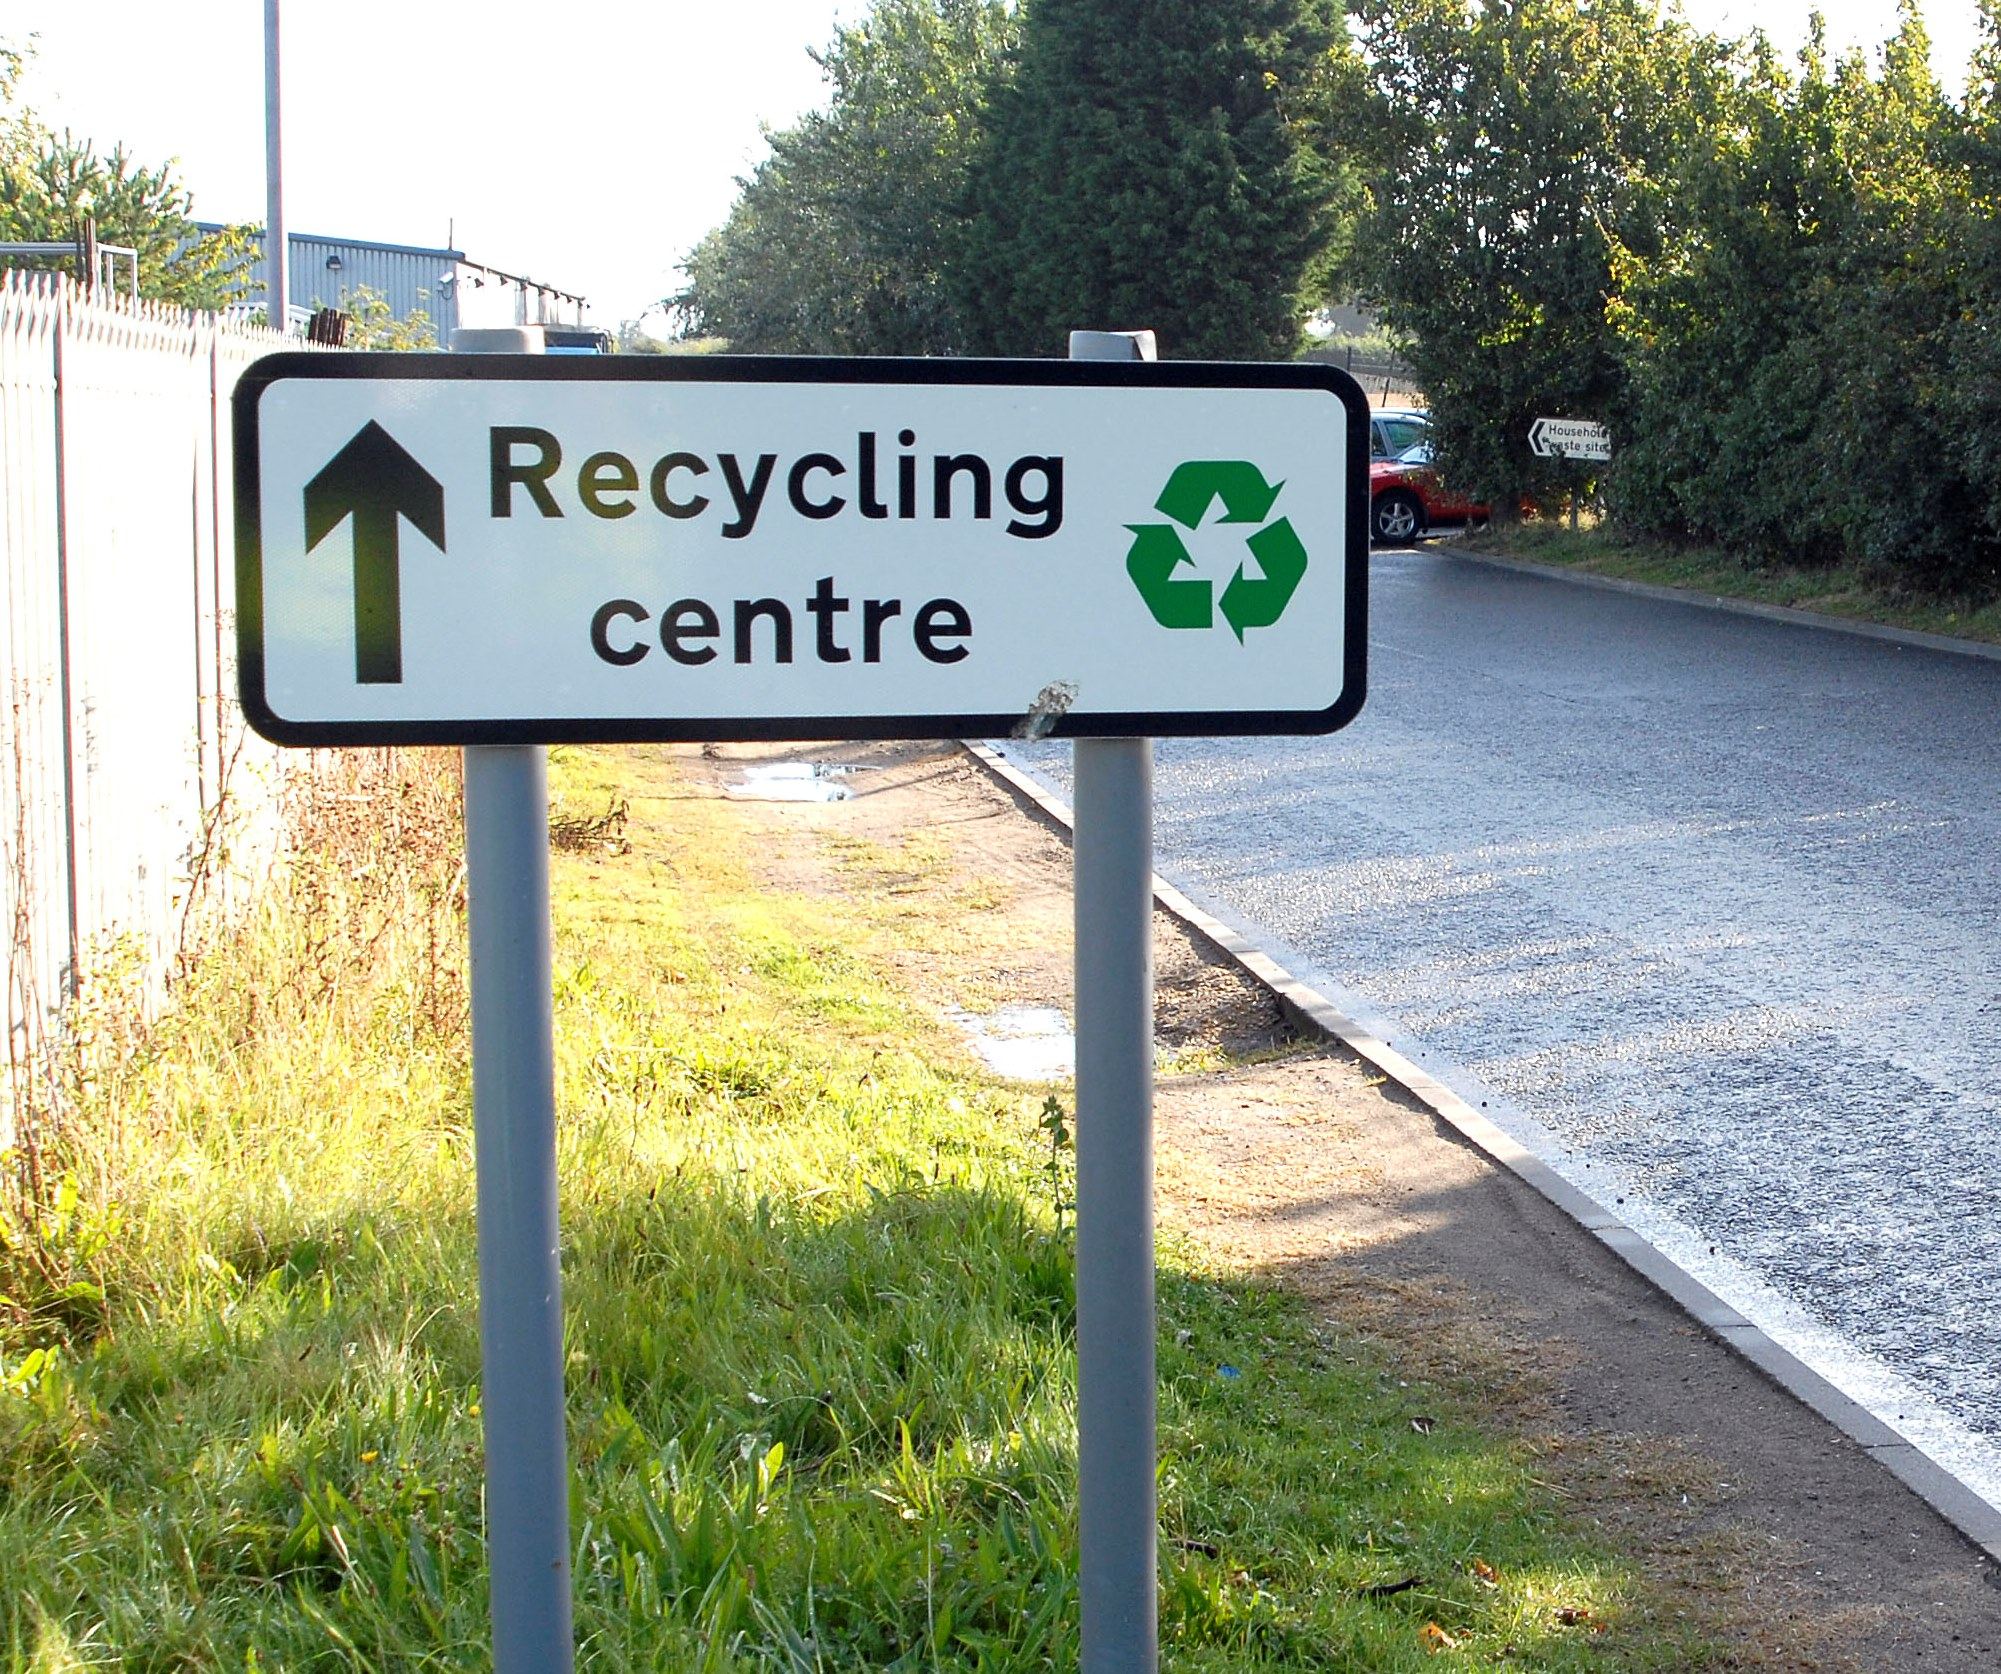 photograph showing a recycling centre sign